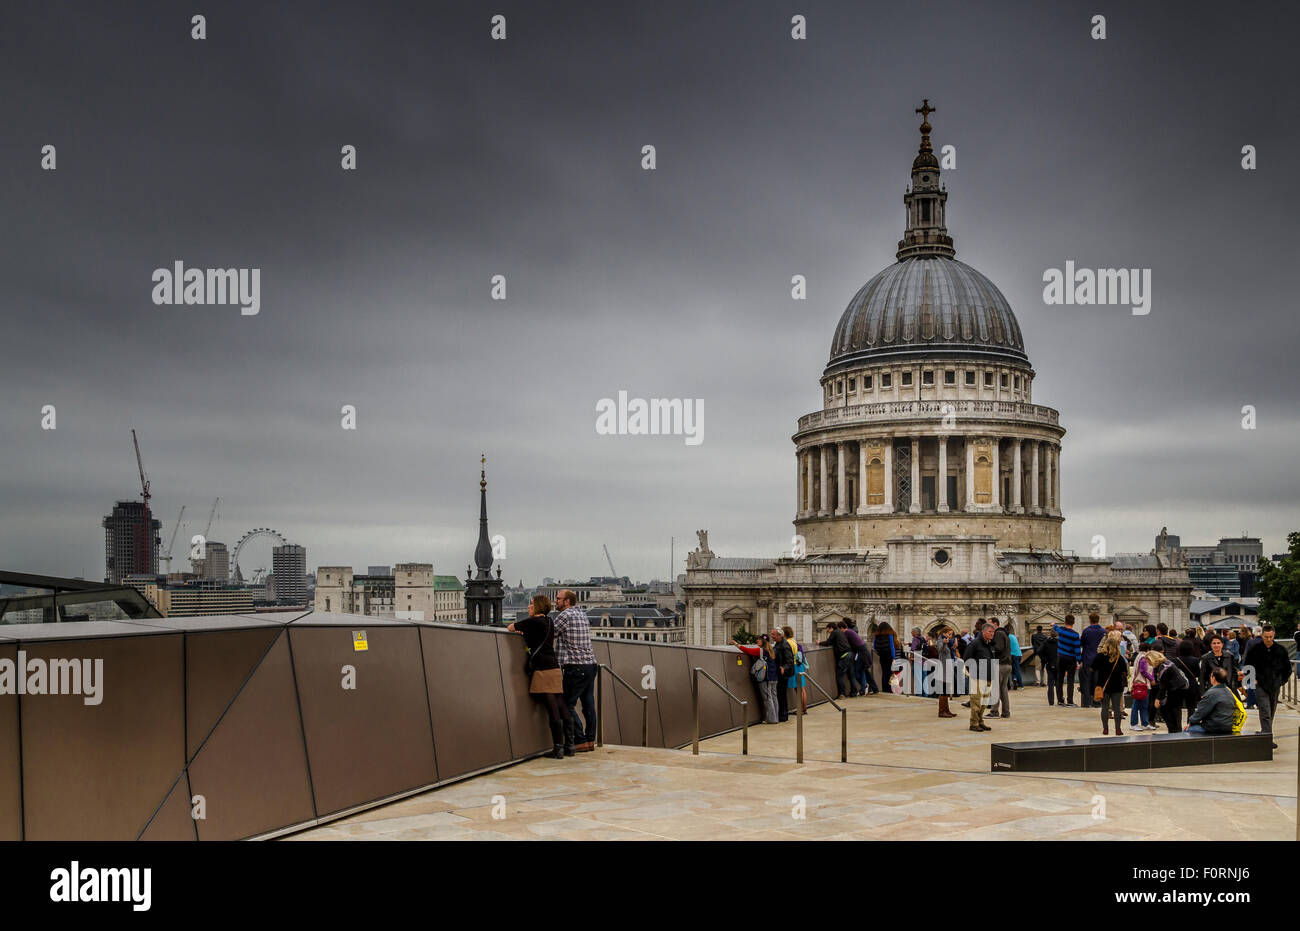 St Paul's Cathedral From 1 New Change - Stock Image